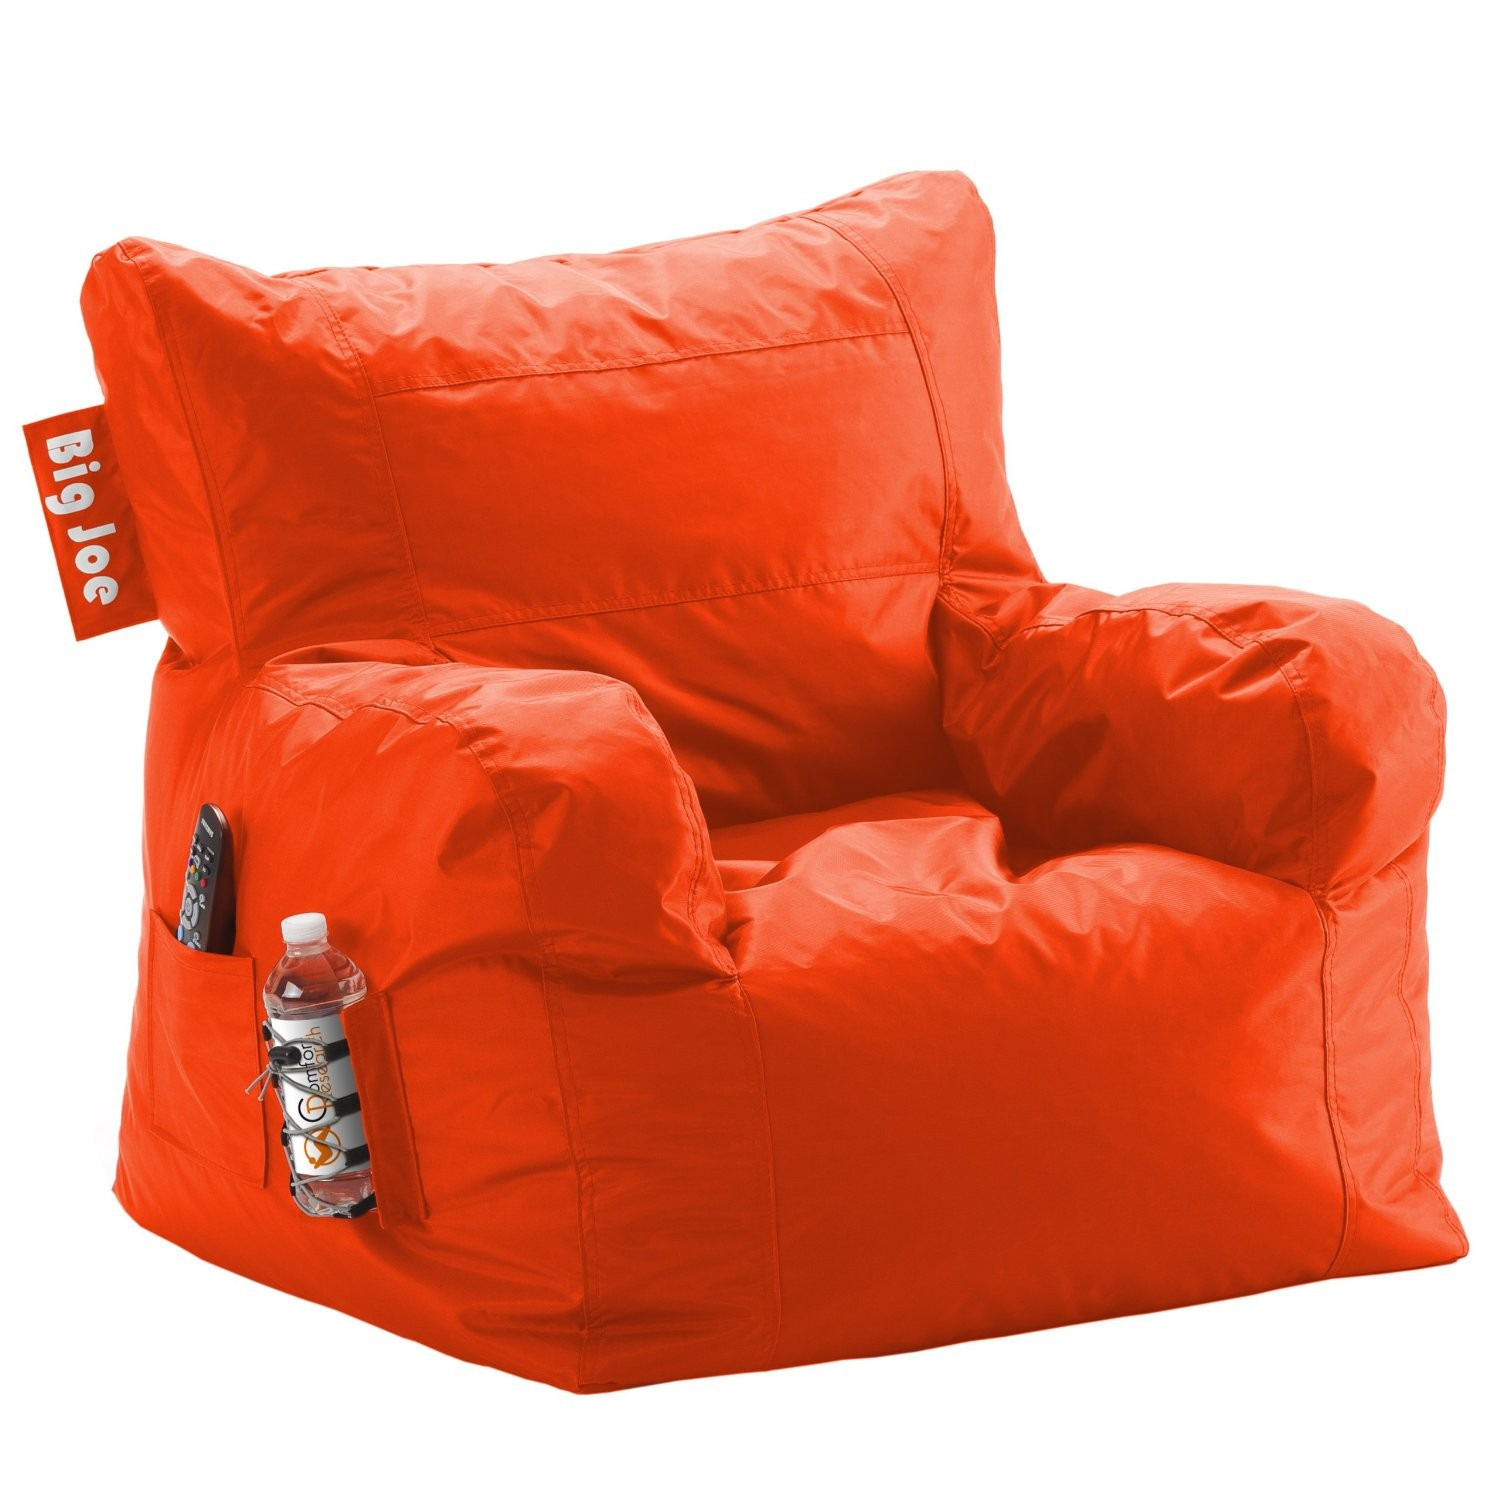 Comfortable Bean Bag Chairs 15 Must Haves For Living In A Dorm Room